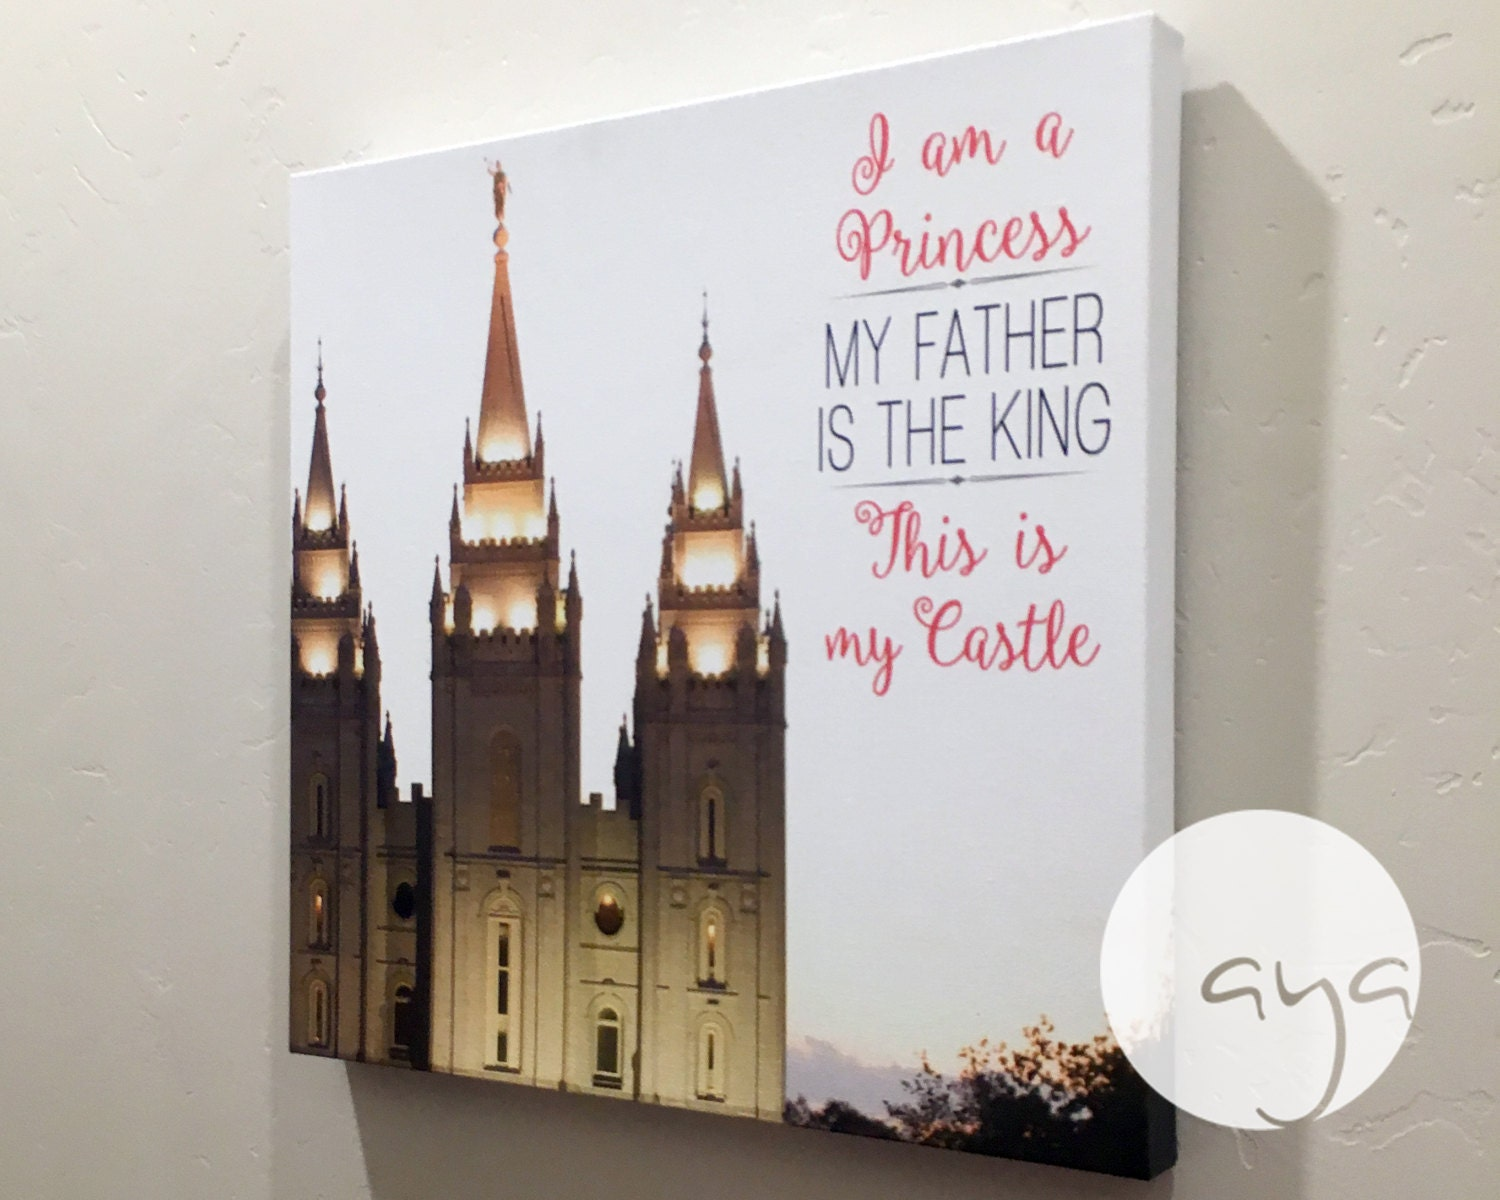 Princess castle temple quote salt lake city utah lds temple zoom kristyandbryce Image collections